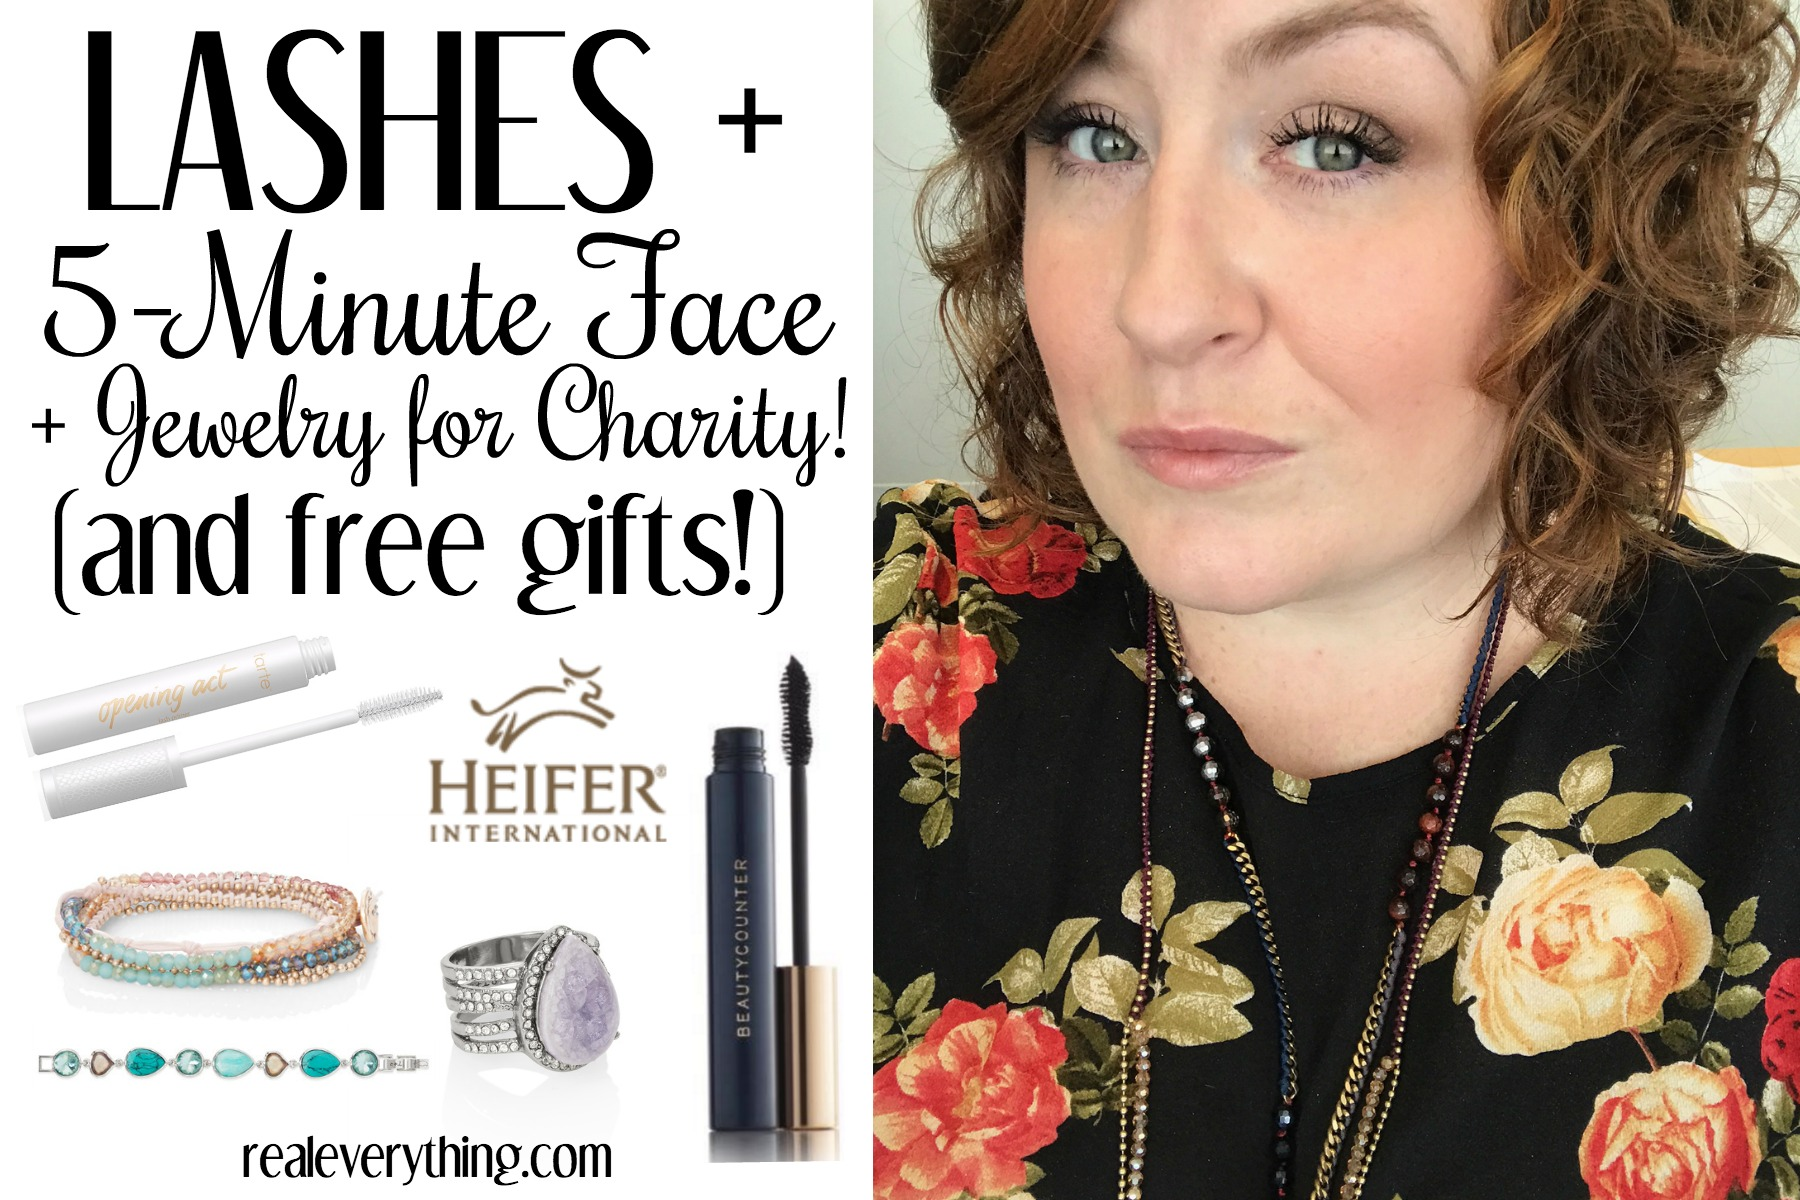 Lashes + 5 Min Face + Jewelry FOR CHARITY! (plus free gifts!) - Real Everything